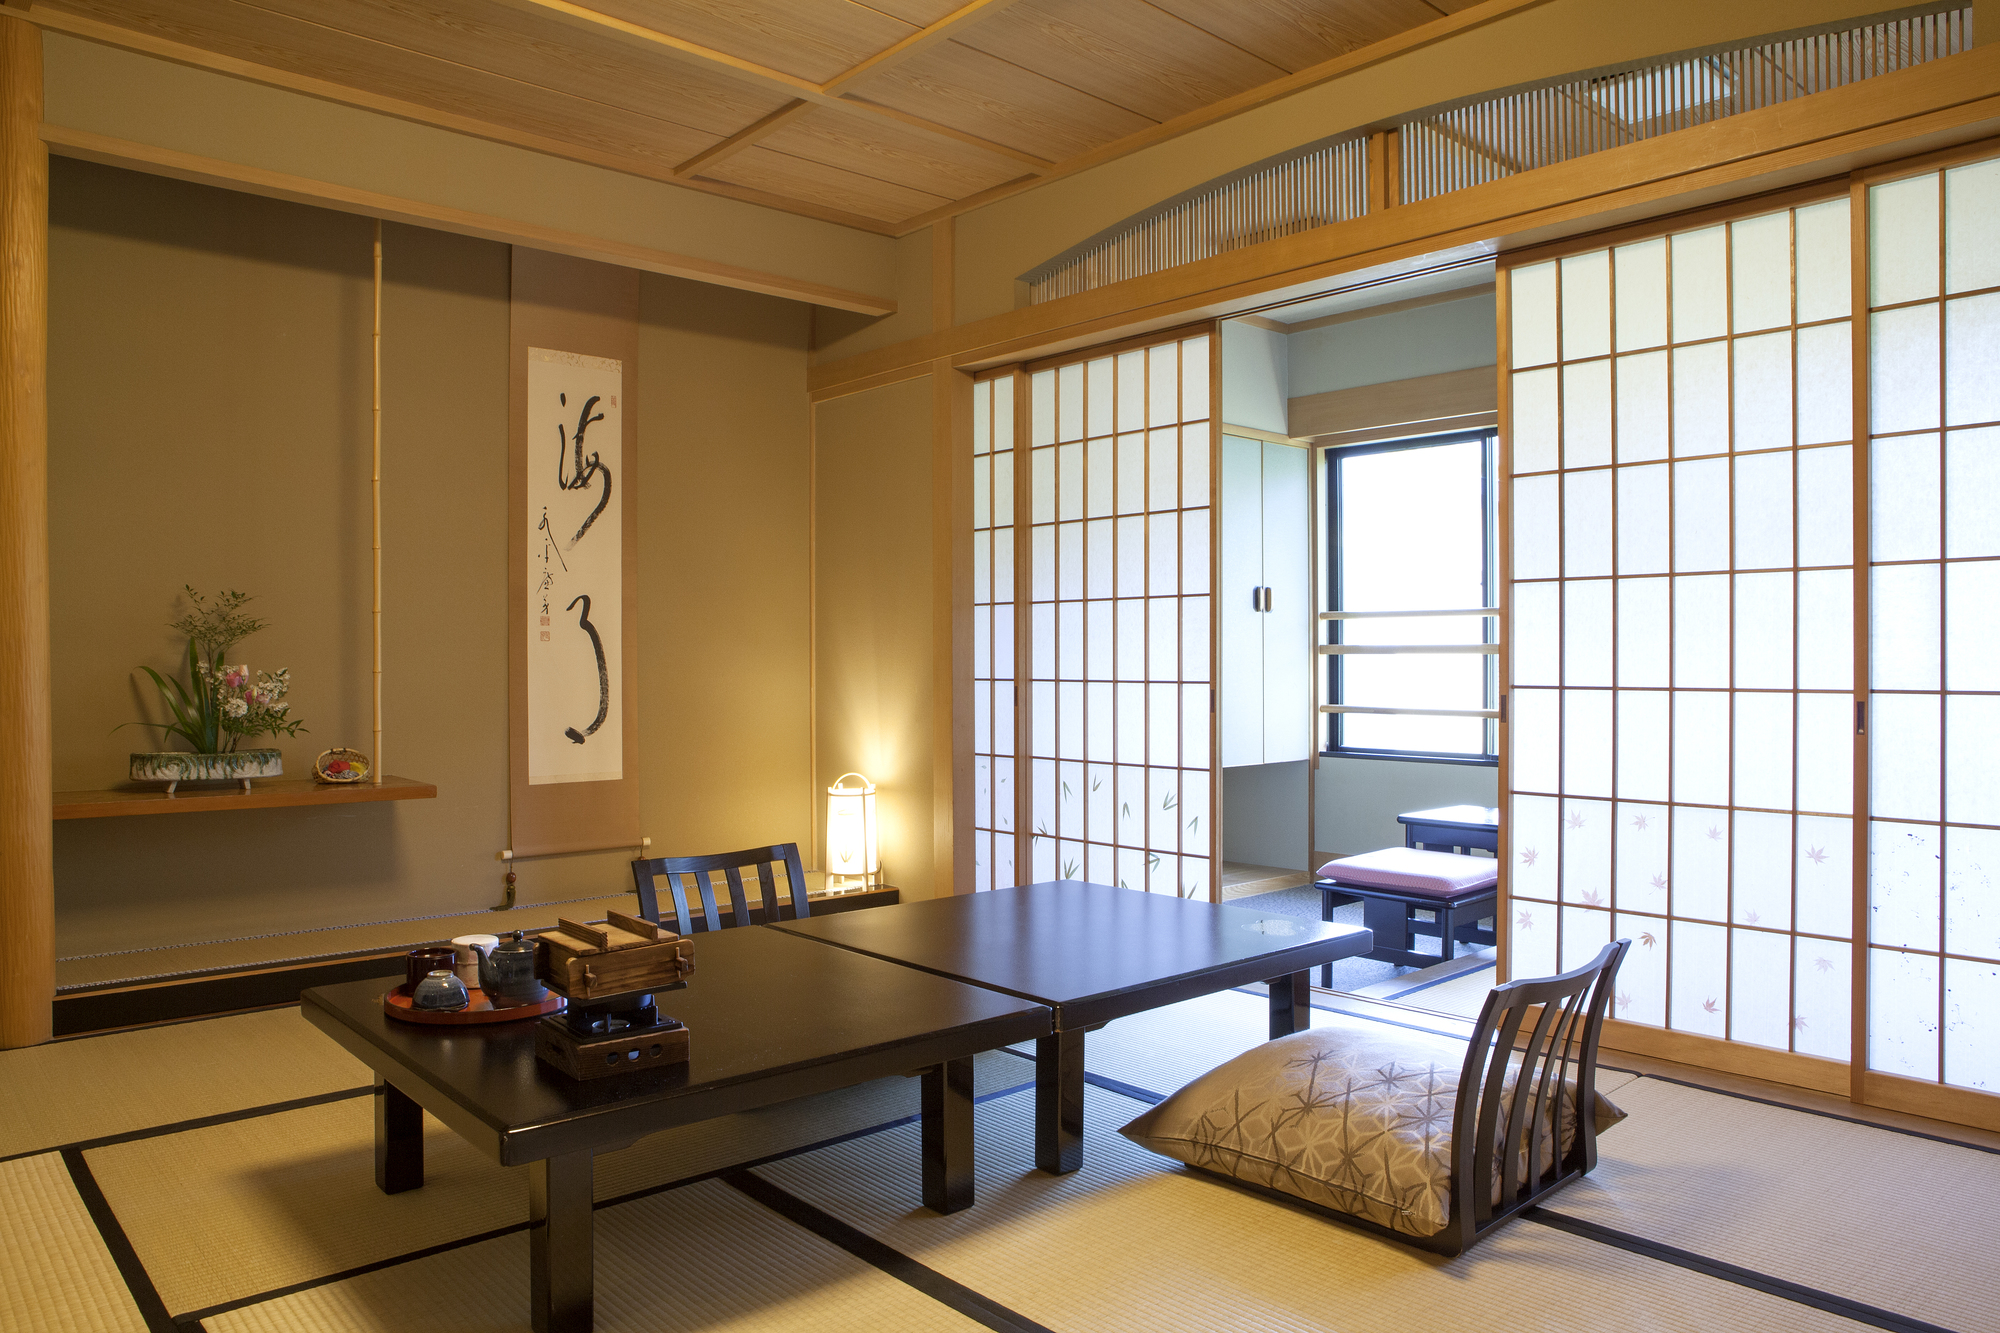 Japanese Traditional Interior Design Elements Work In Japan For Engineers